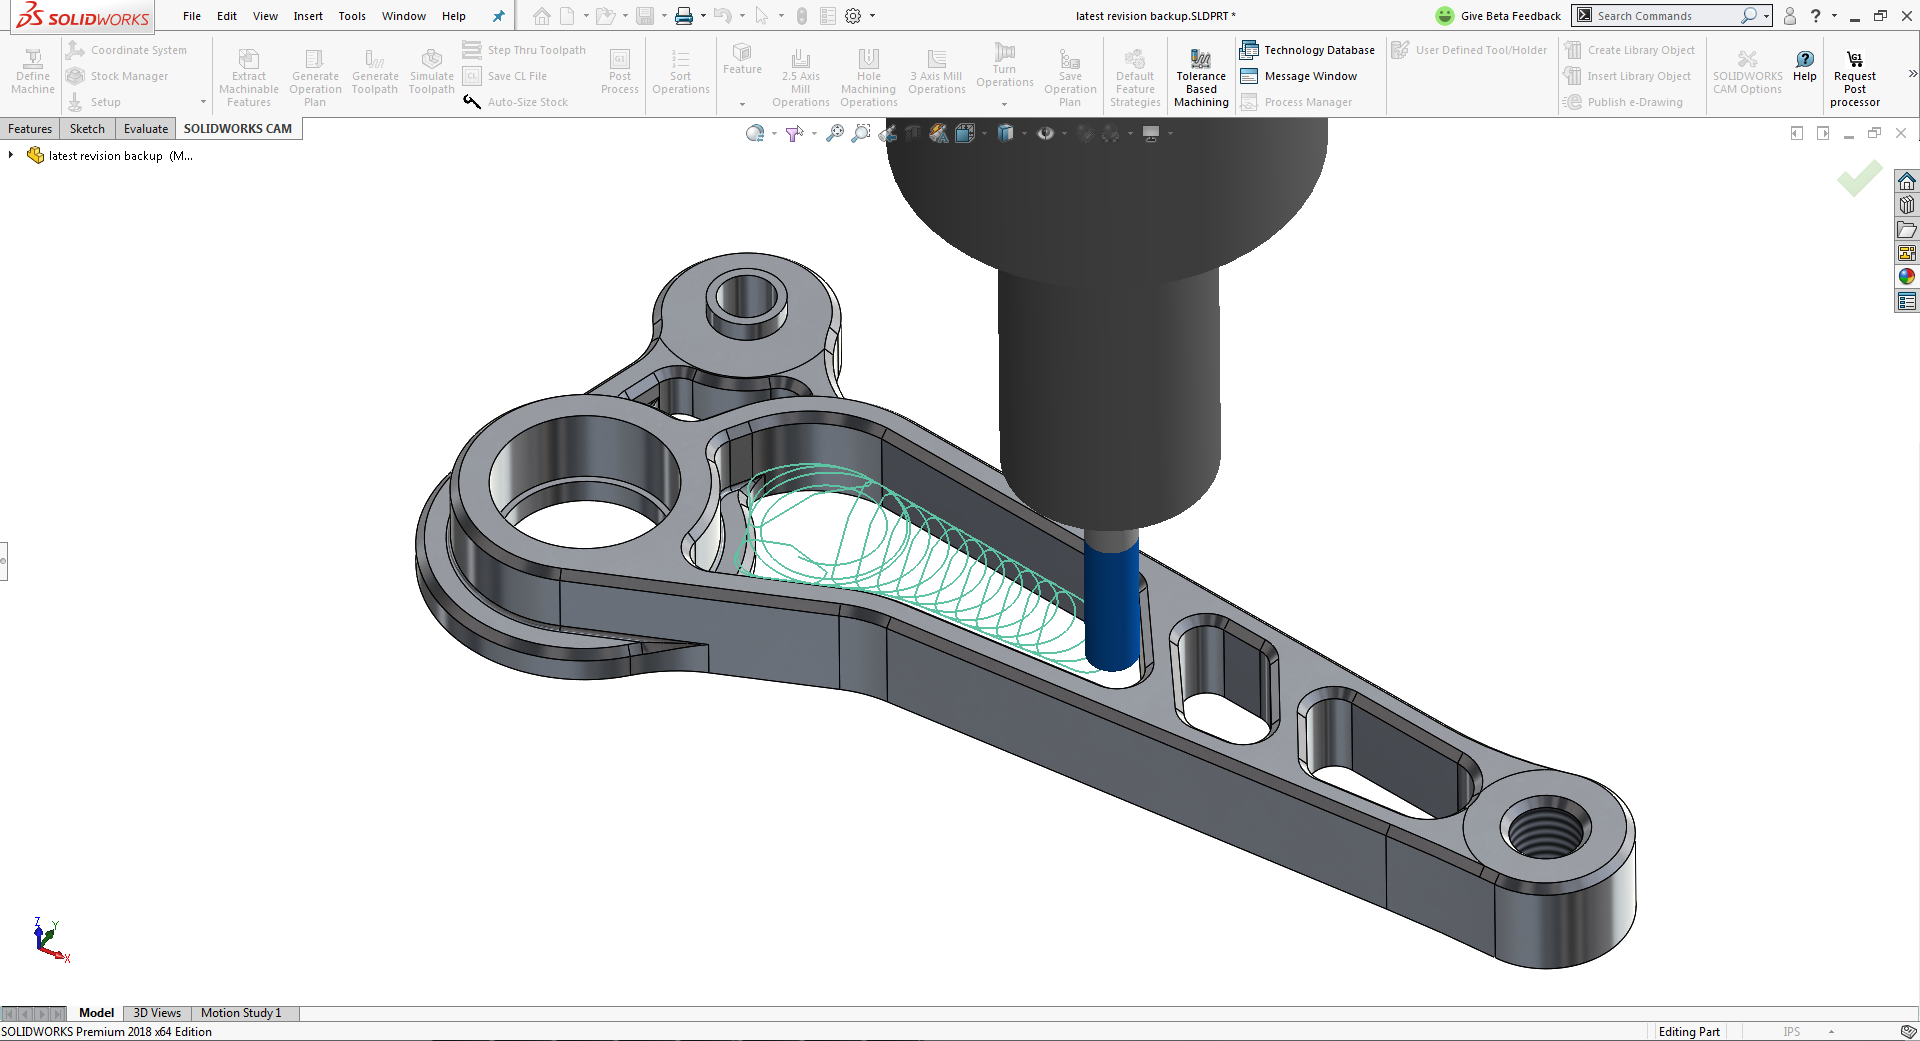 CAM features of SolidWorks